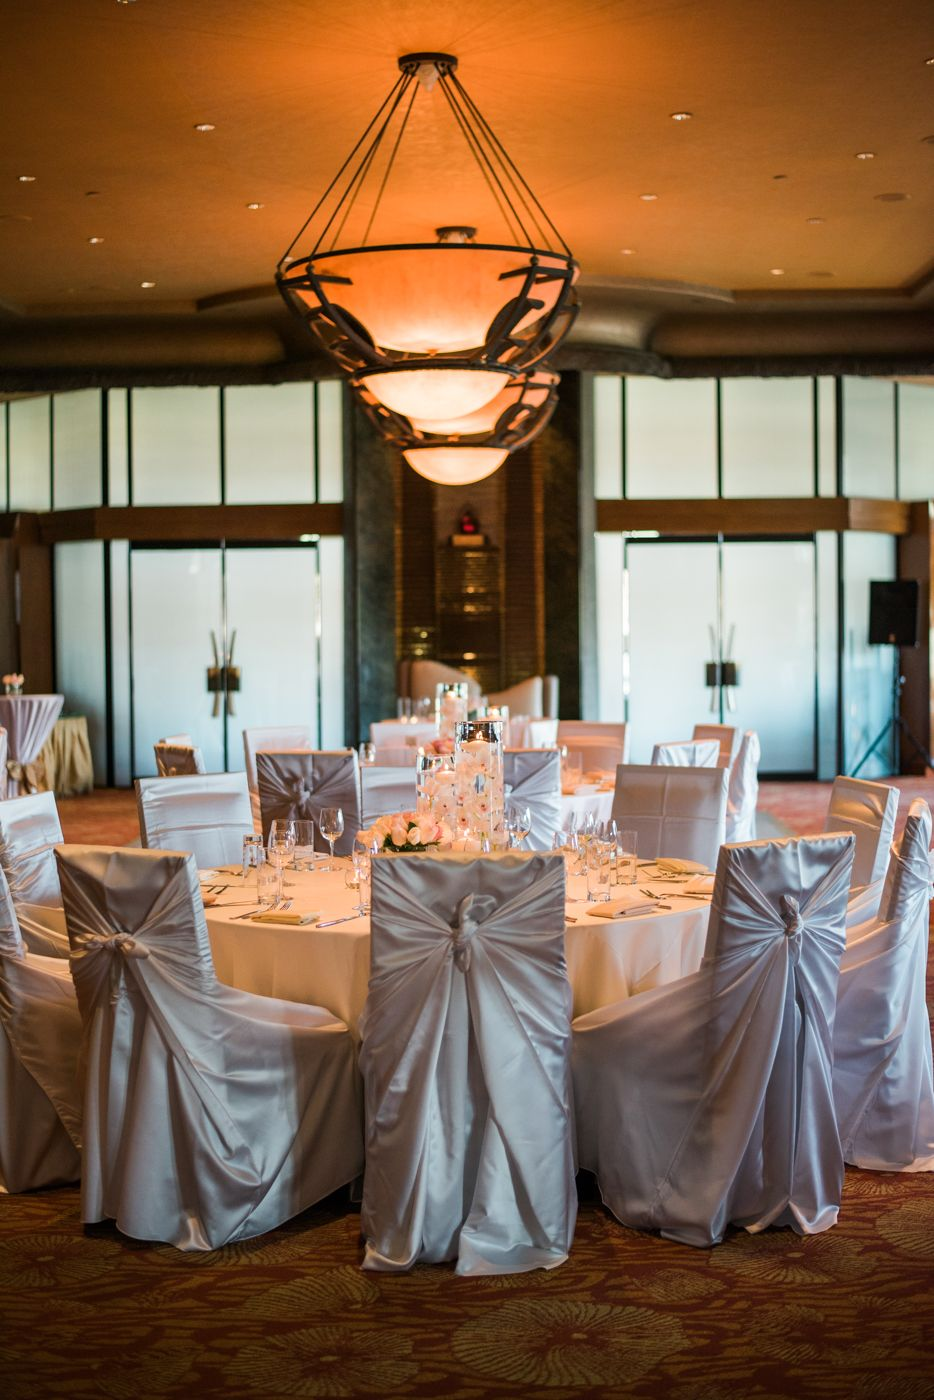 The Main Dining Room Set Up For A Wedding Reception At Cili Restaurant Las Vegas